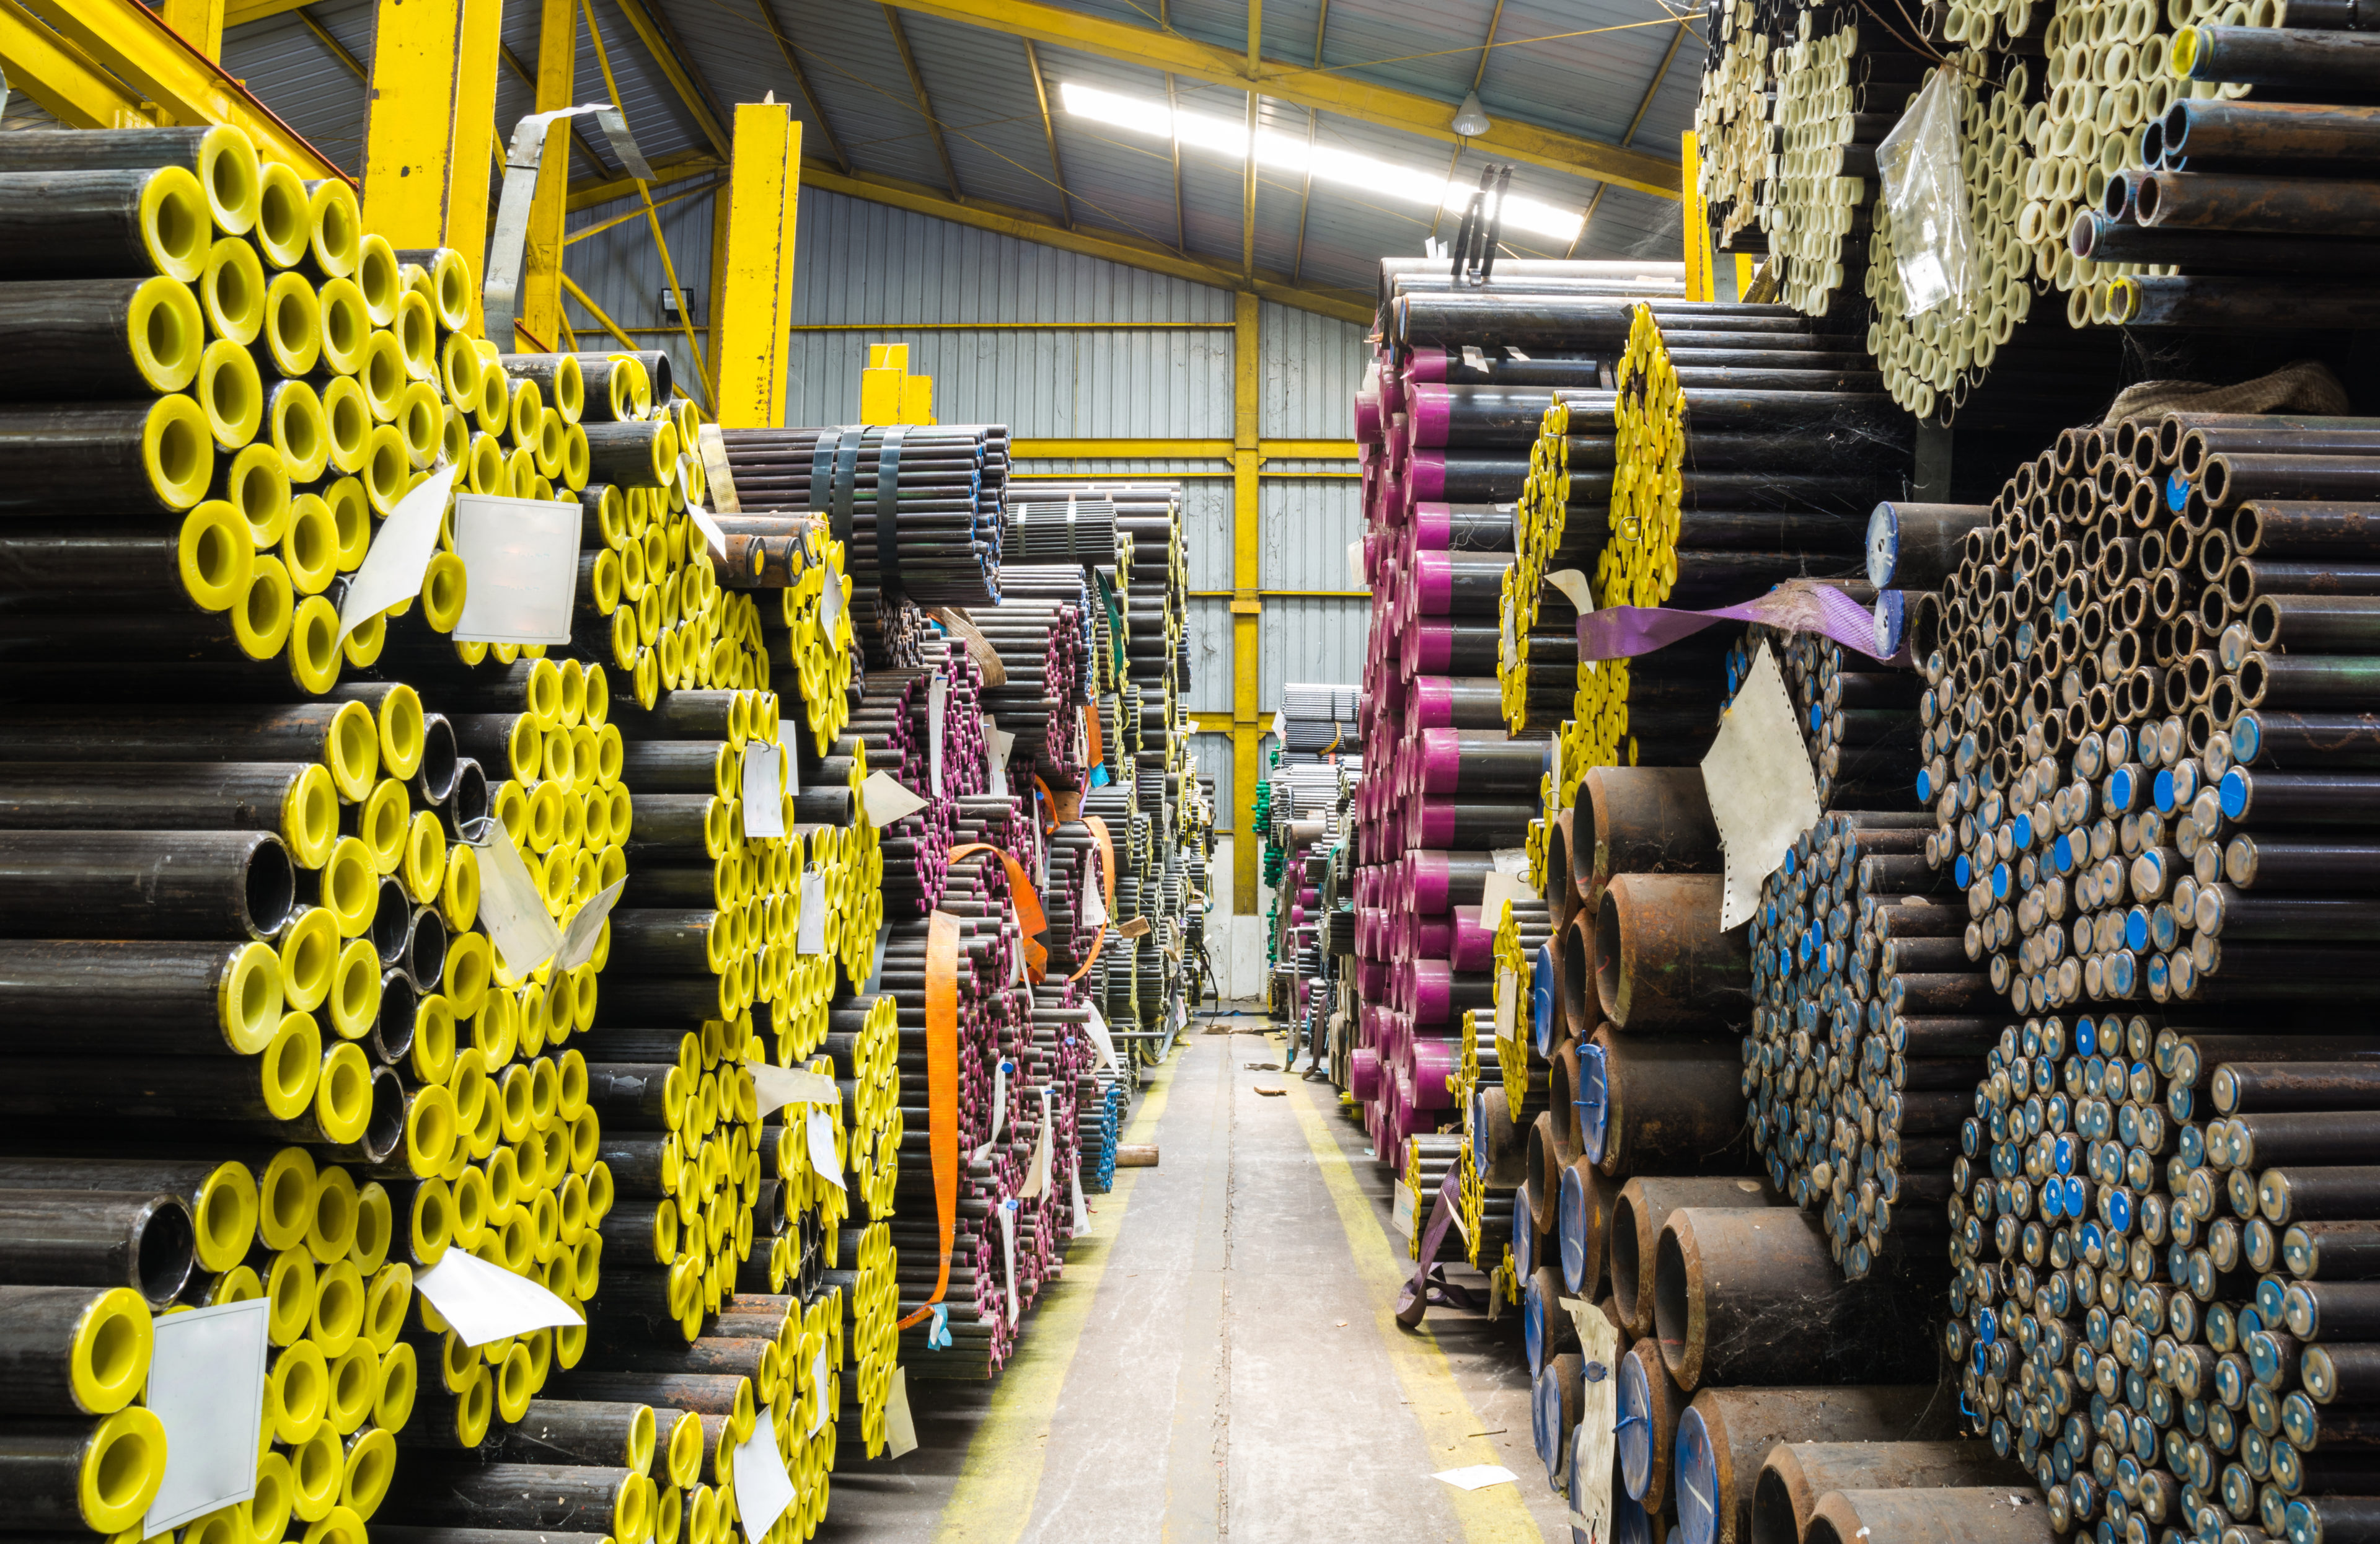 Steel pipes storage in warehouse